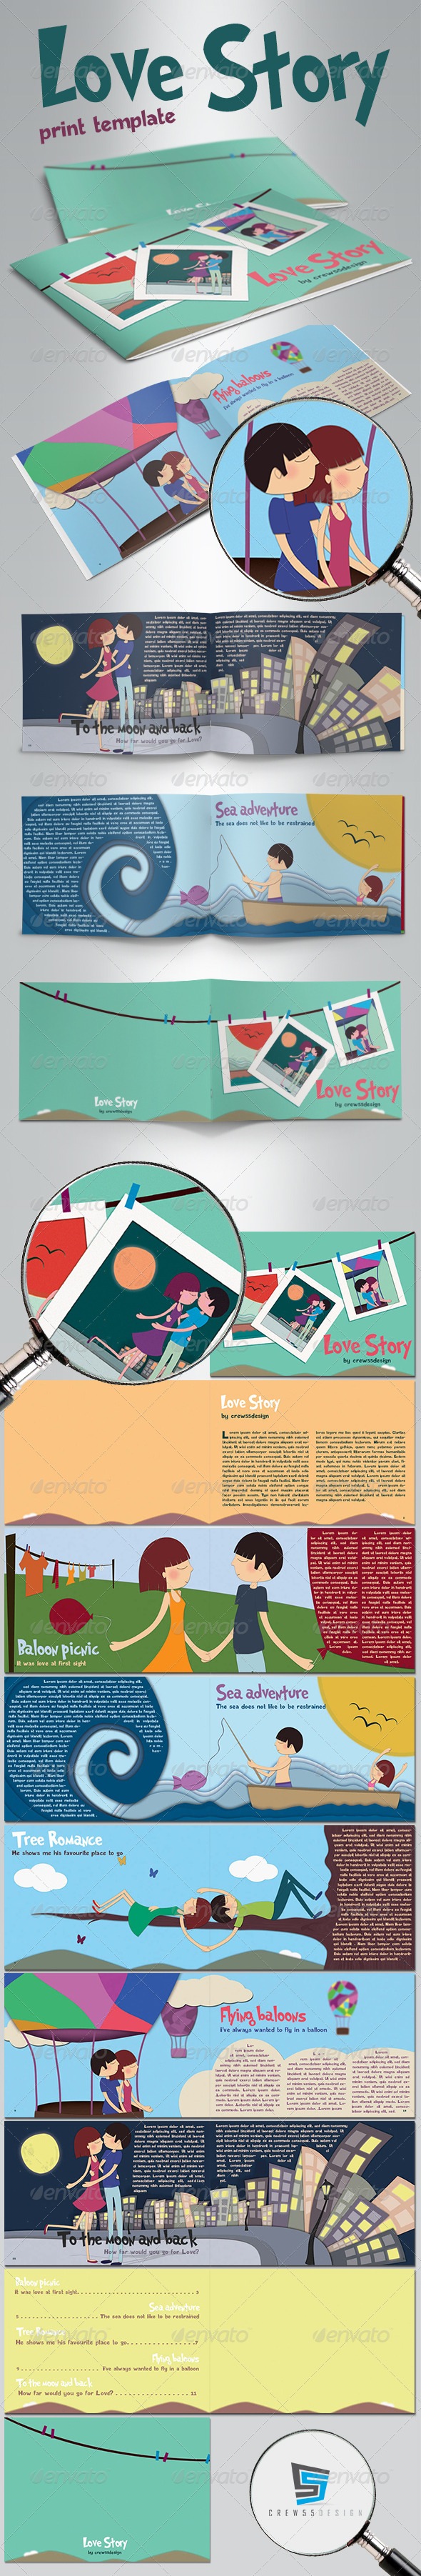 GraphicRiver Illustrated Love Story Template 4383880